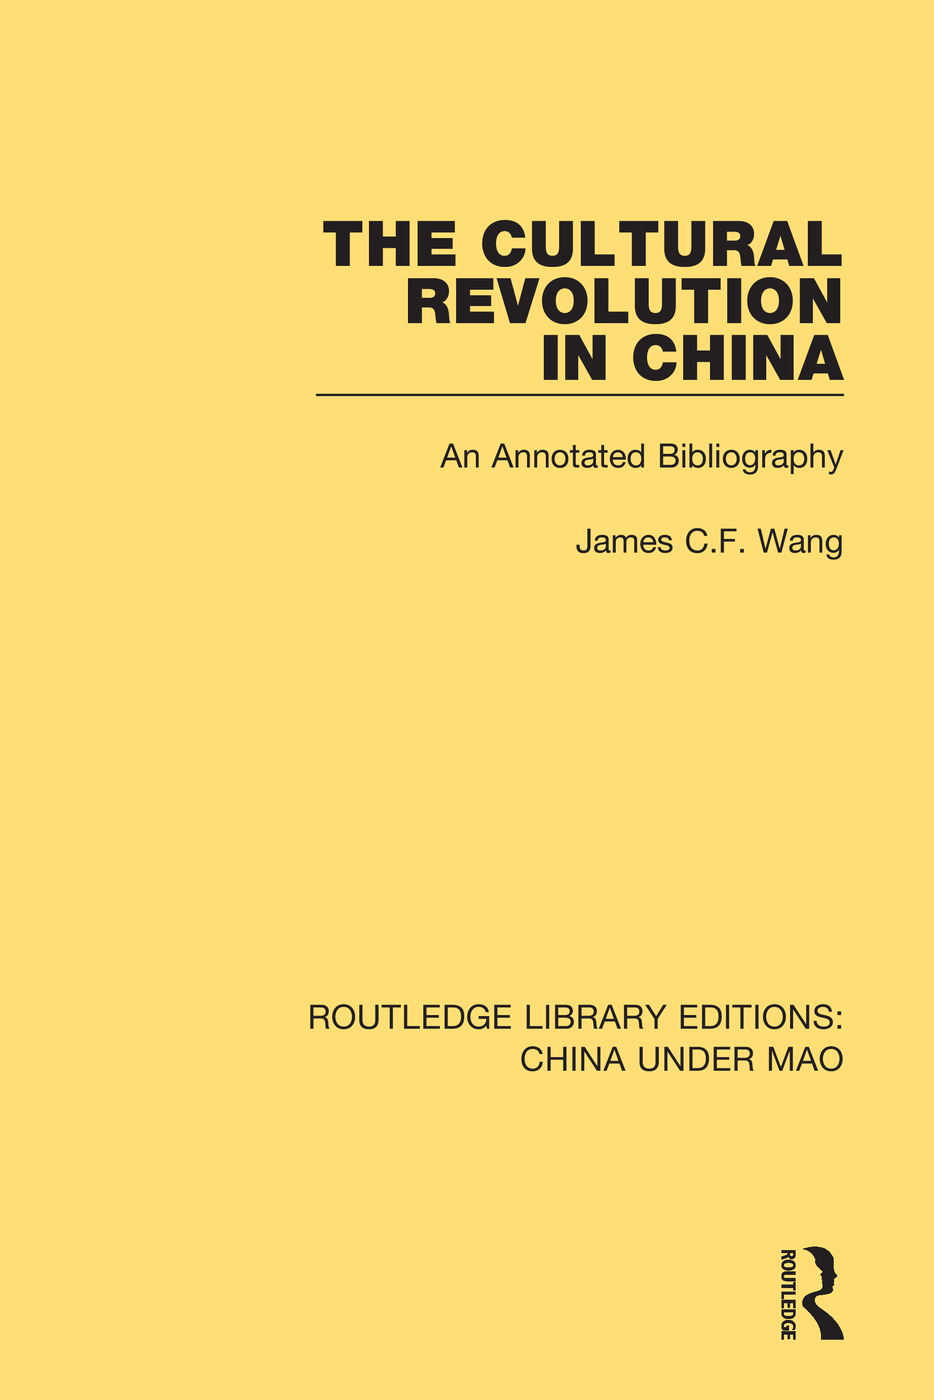 The Cultural Revolution in China: An Annotated Bibliography book cover